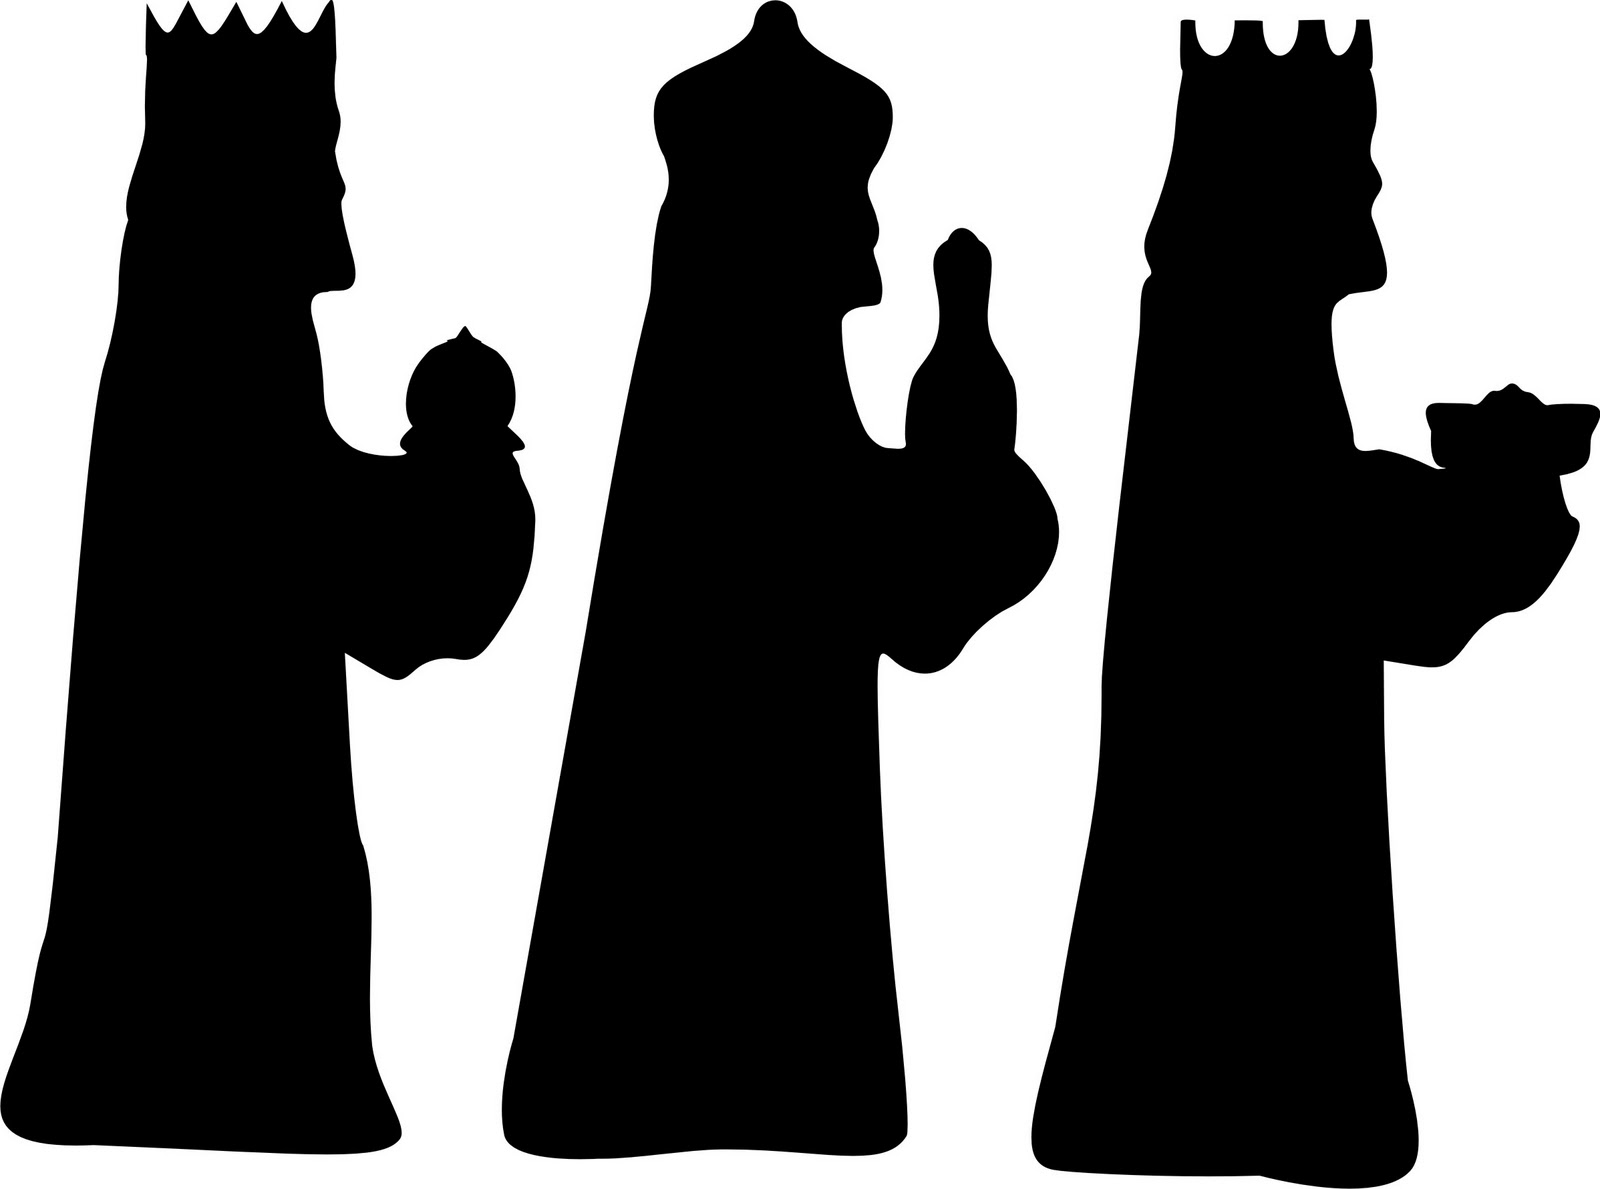 Three Wise Men Silhouette Template | Search Results | Calendar 2015